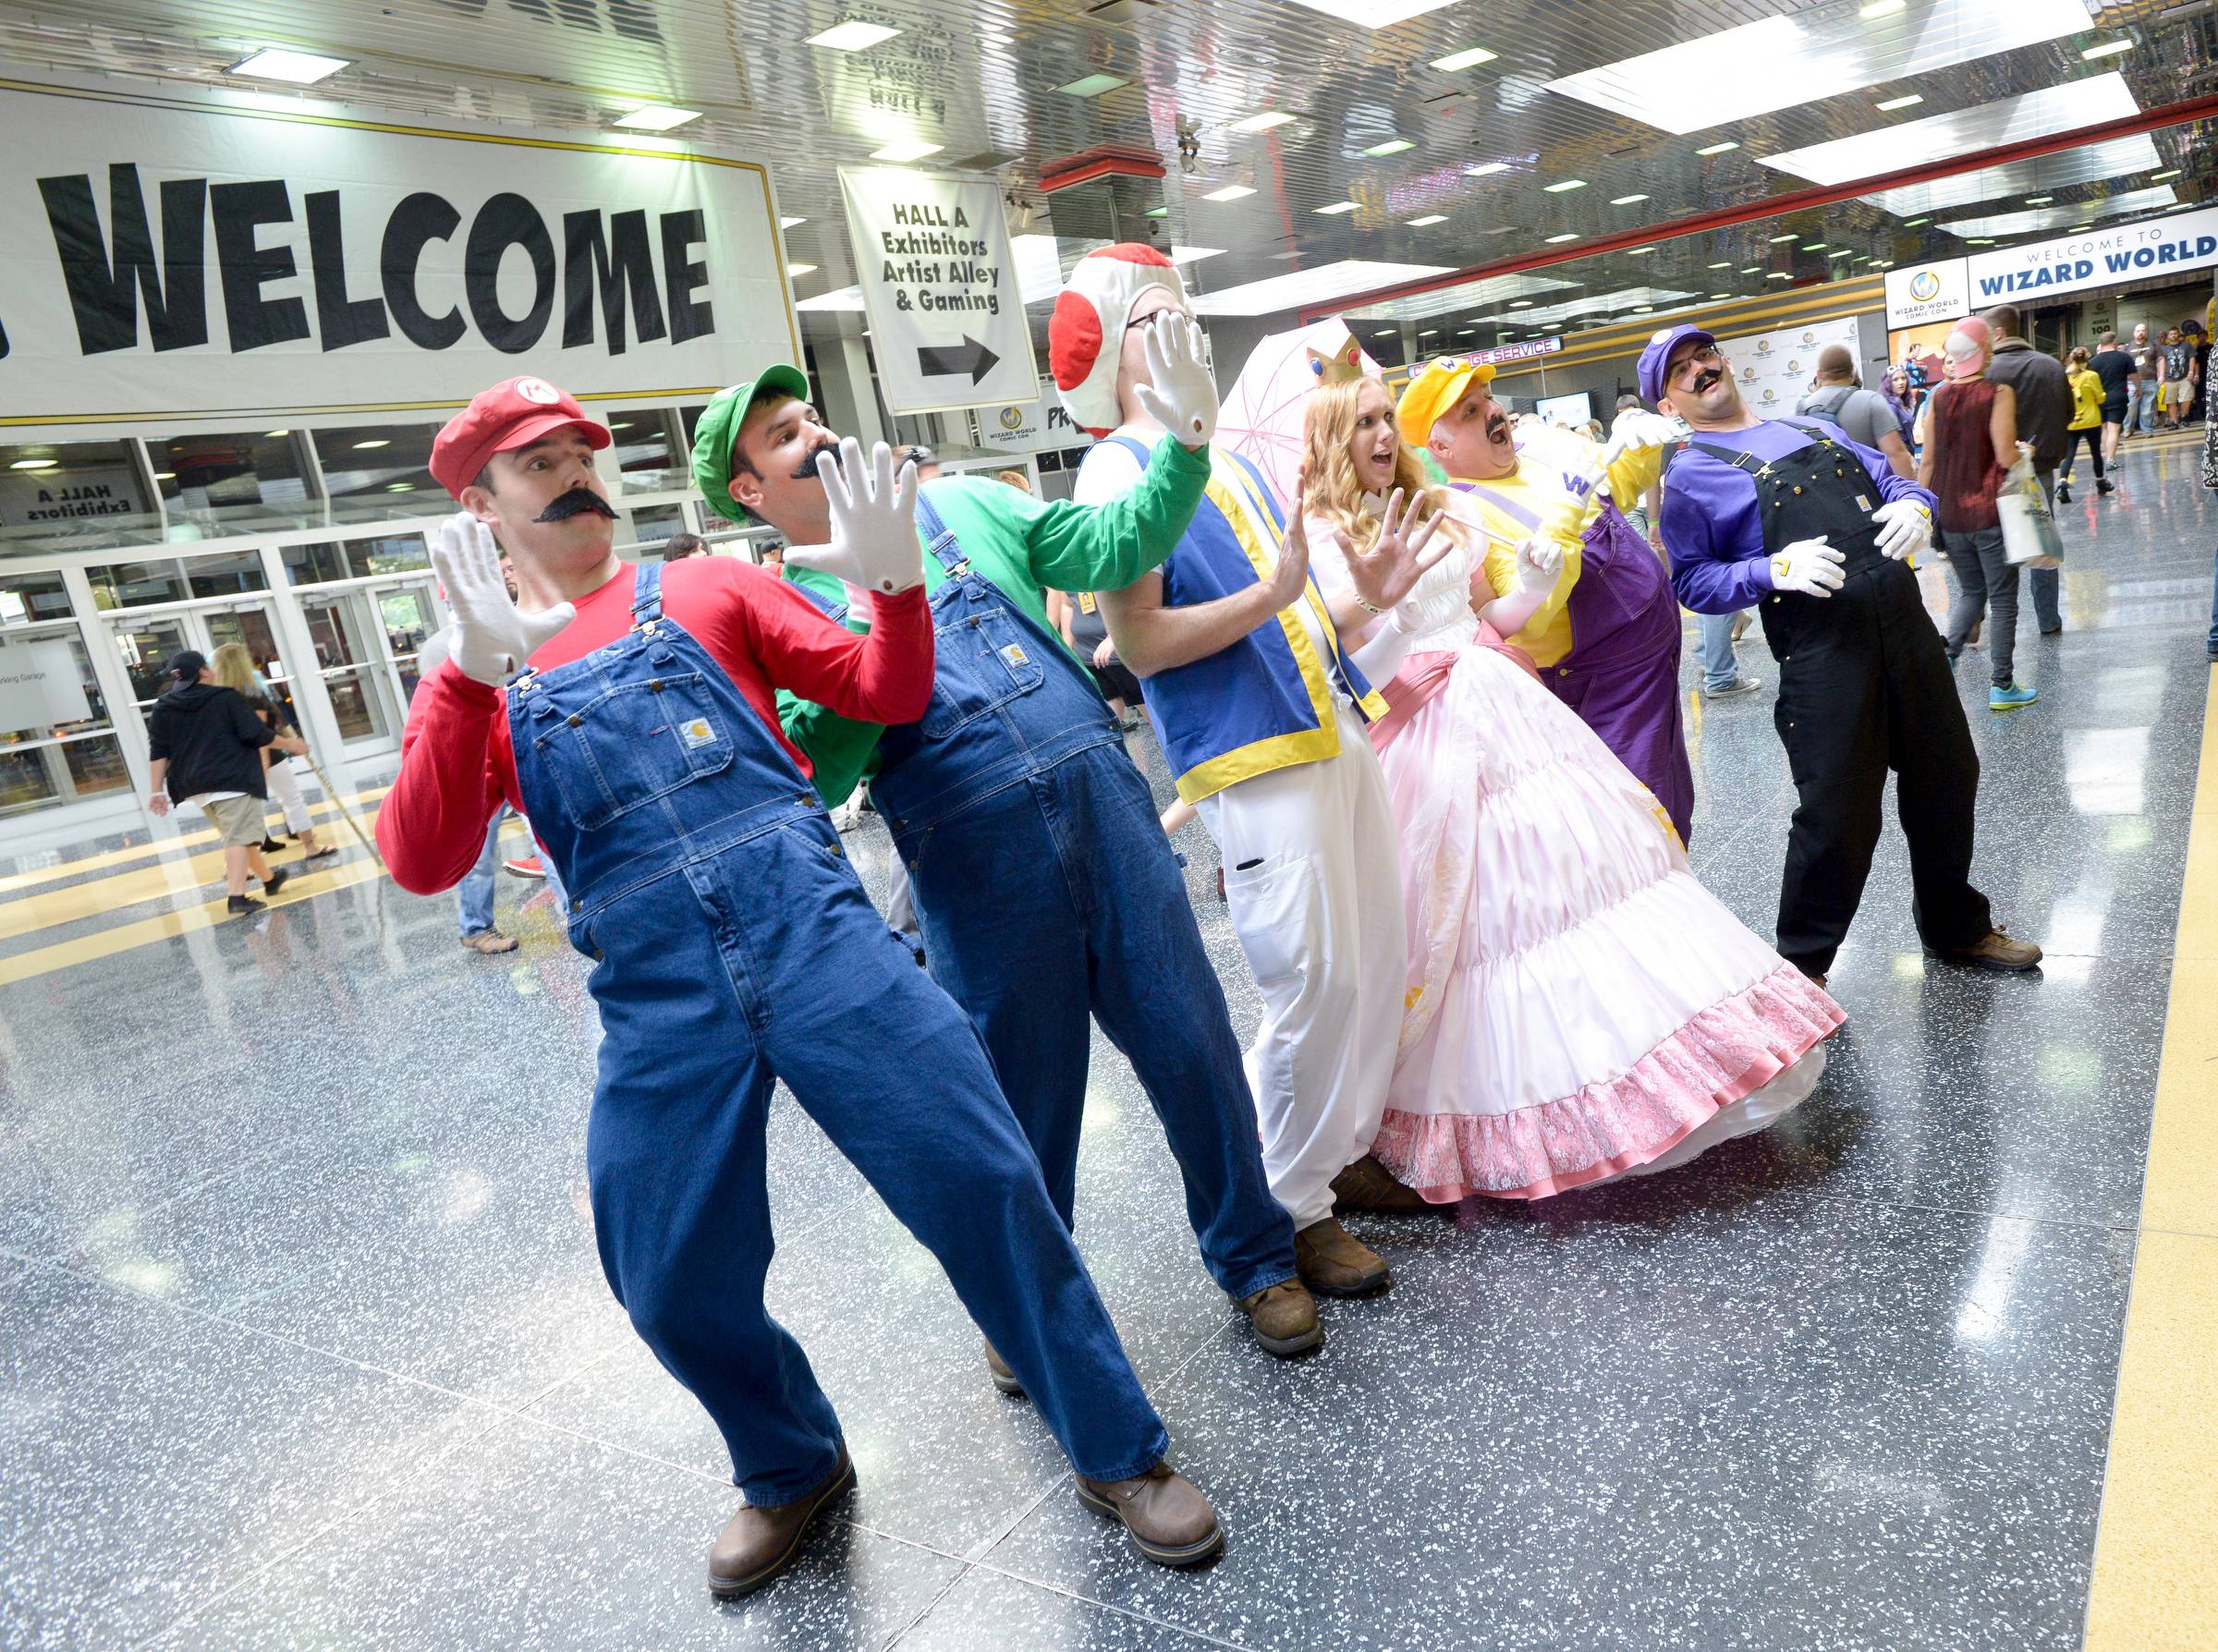 Mark Black/mblack@dailyherald.comThe Donald E. Stephens Convention Center in Rosemont was filled with many fans of Comic Con who came fully dressed as their favorite characters from various comics, TV shows and movies.